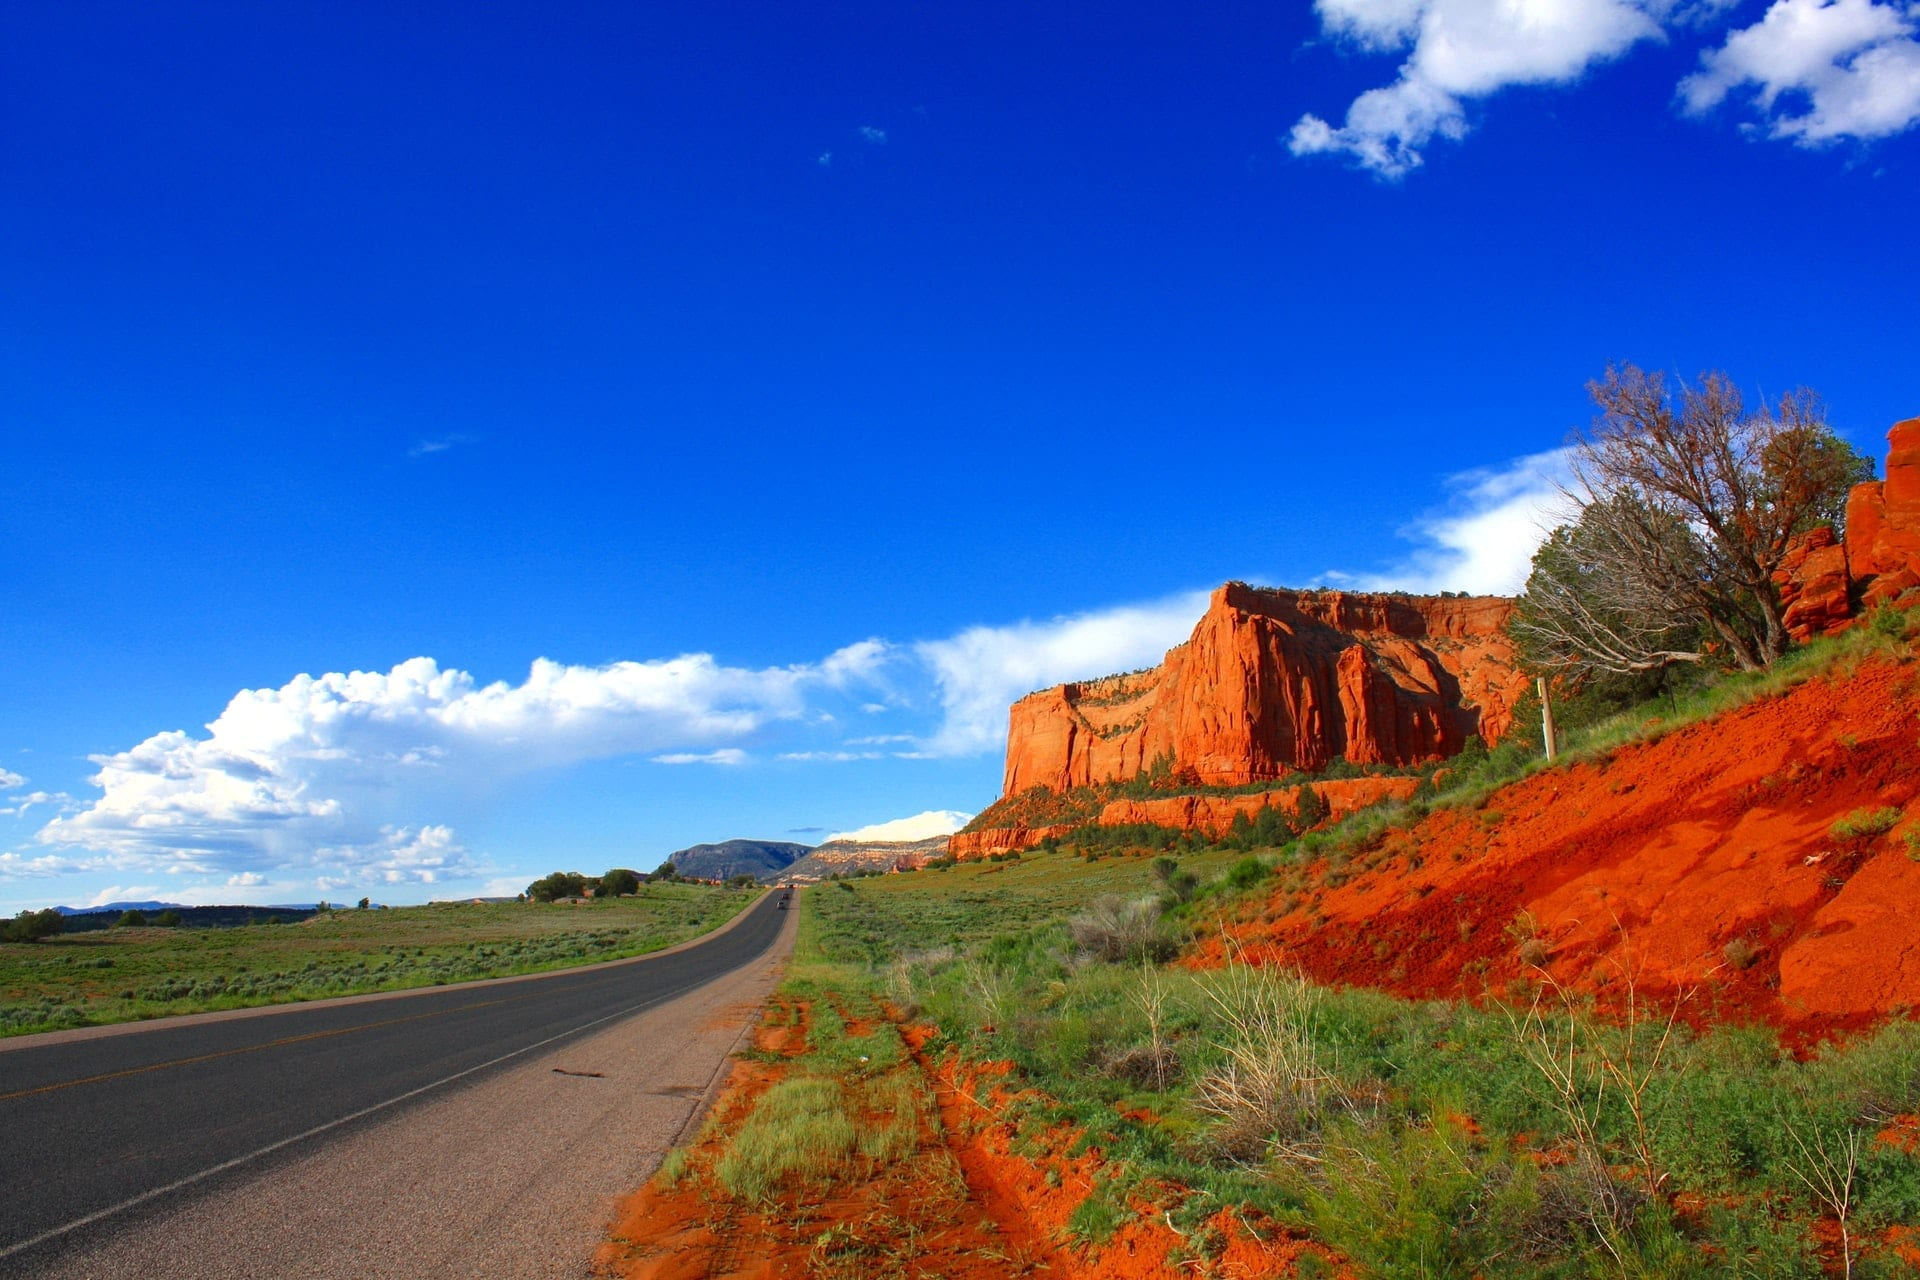 scenic picture taken next to road displaying red mountains of arizona